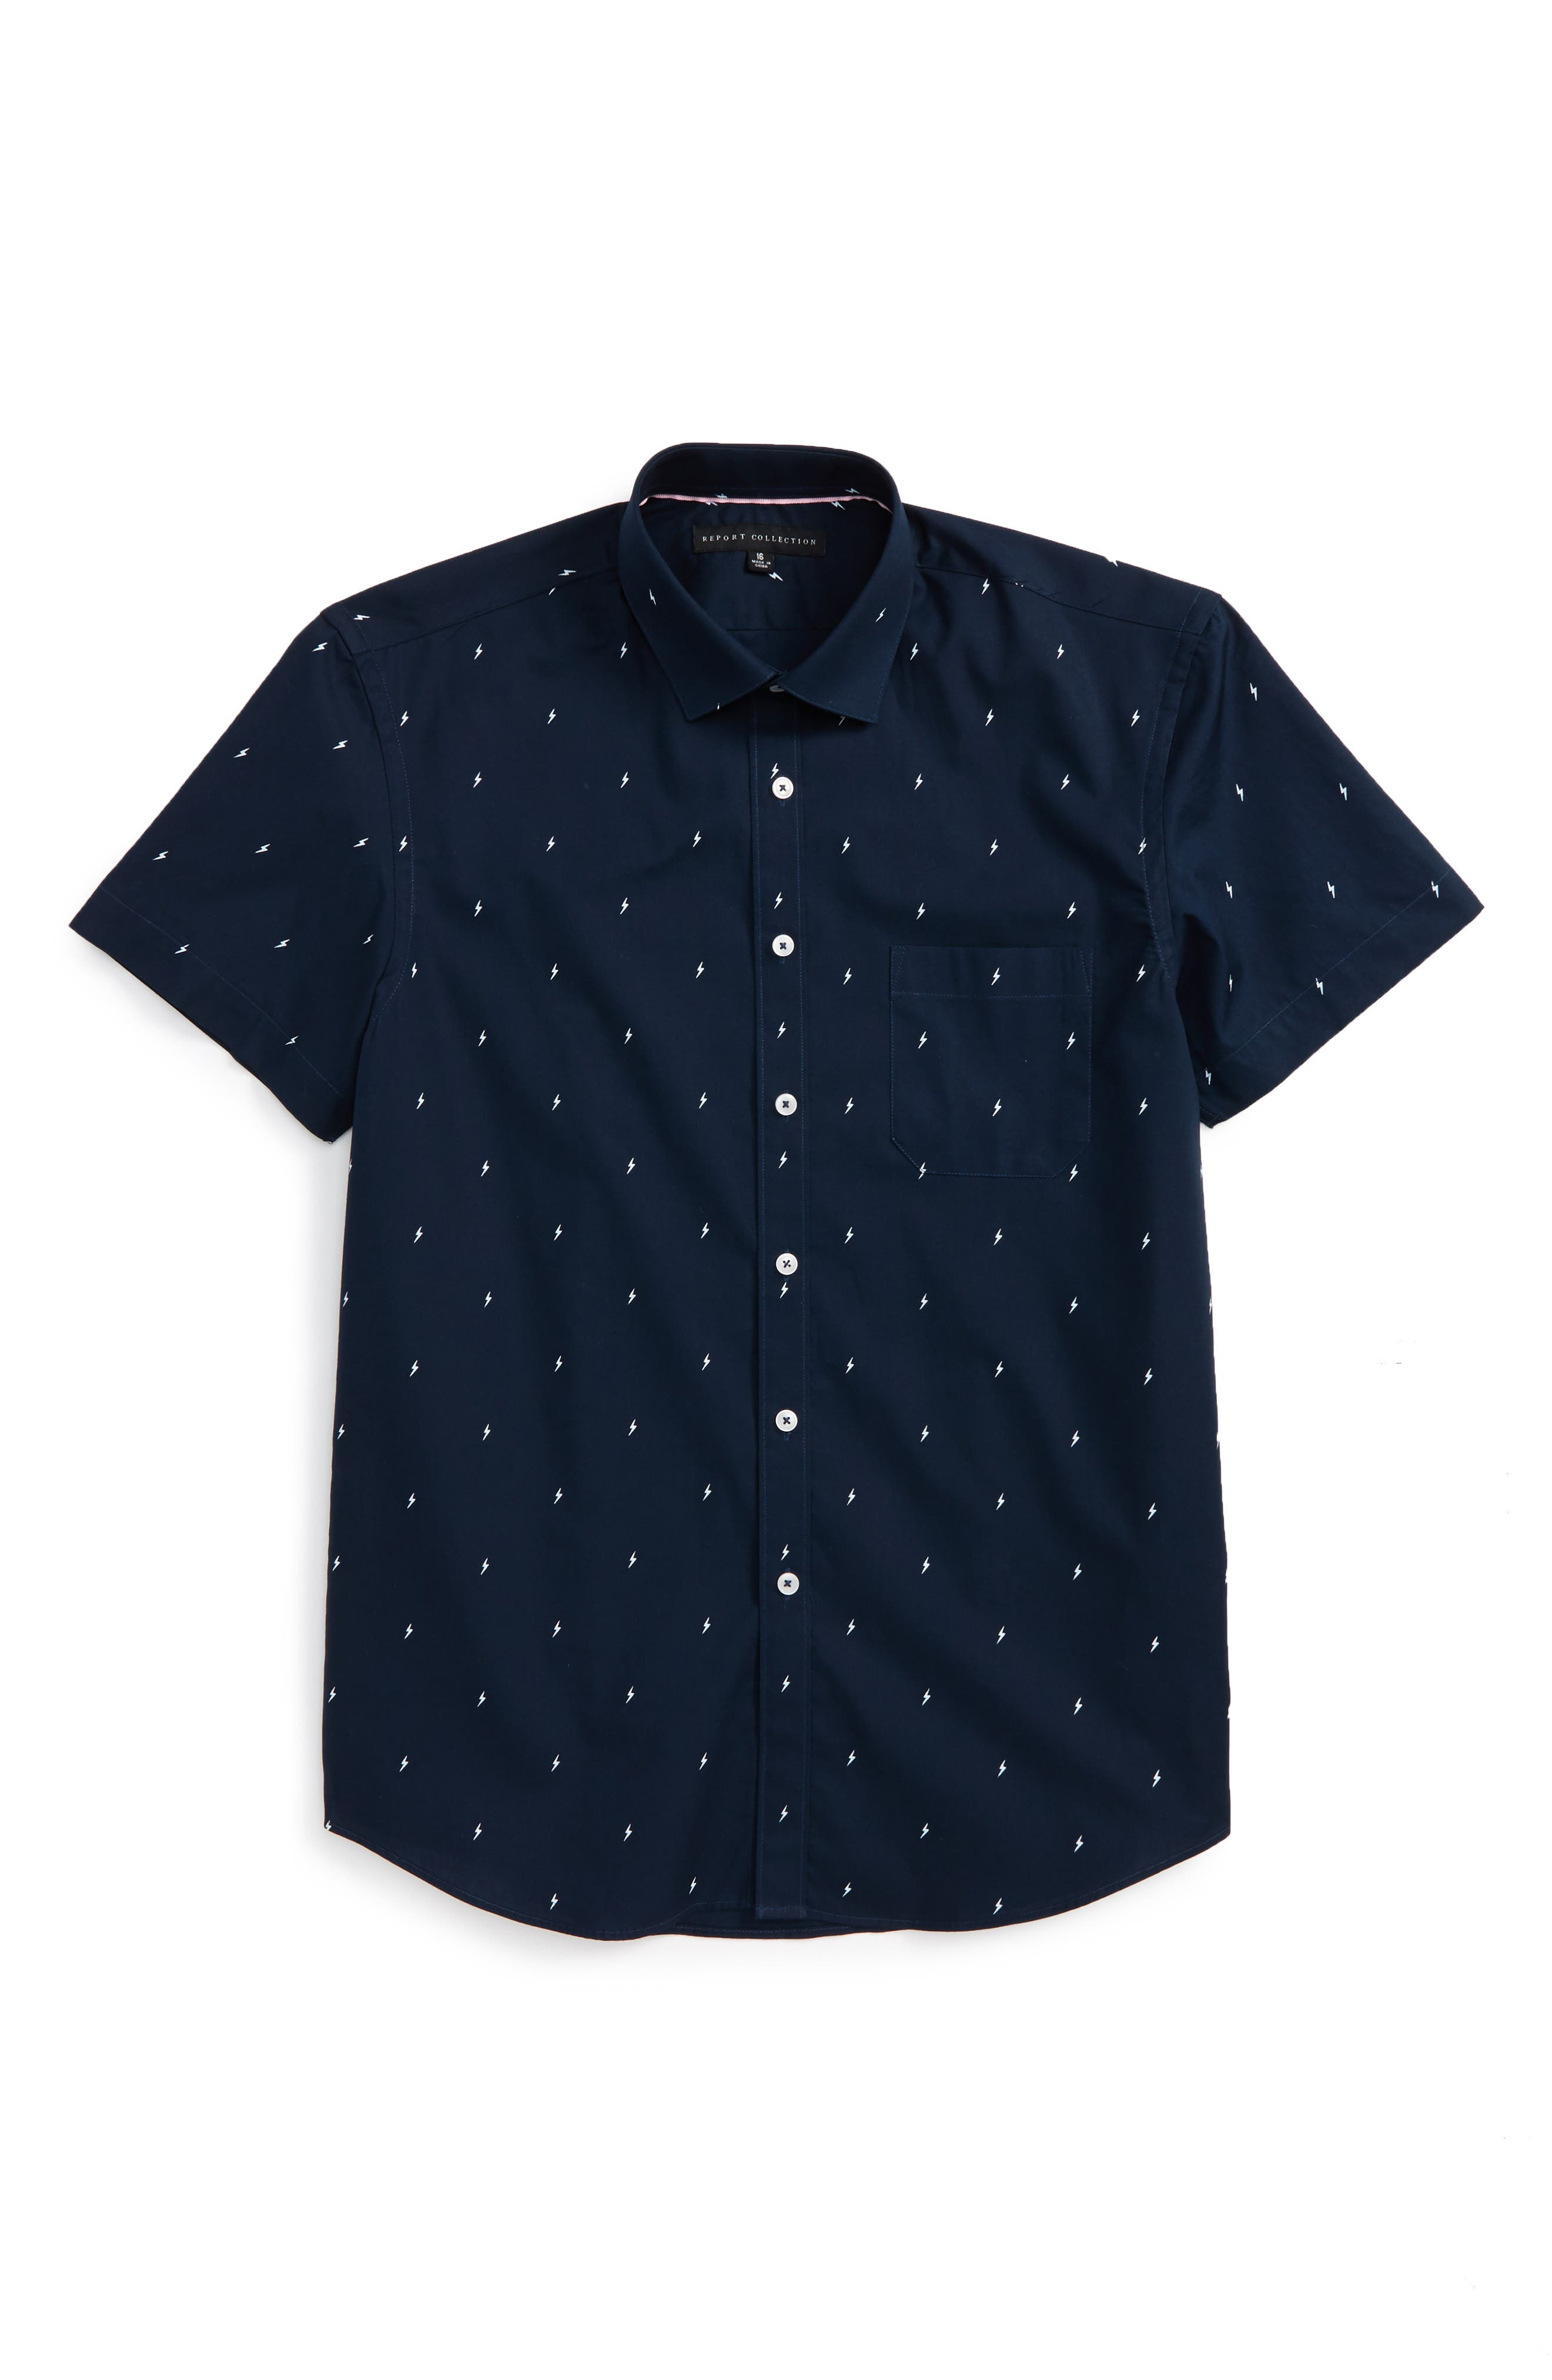 Lightning Bolt Dress Shirt,                             Main thumbnail 1, color,                             411